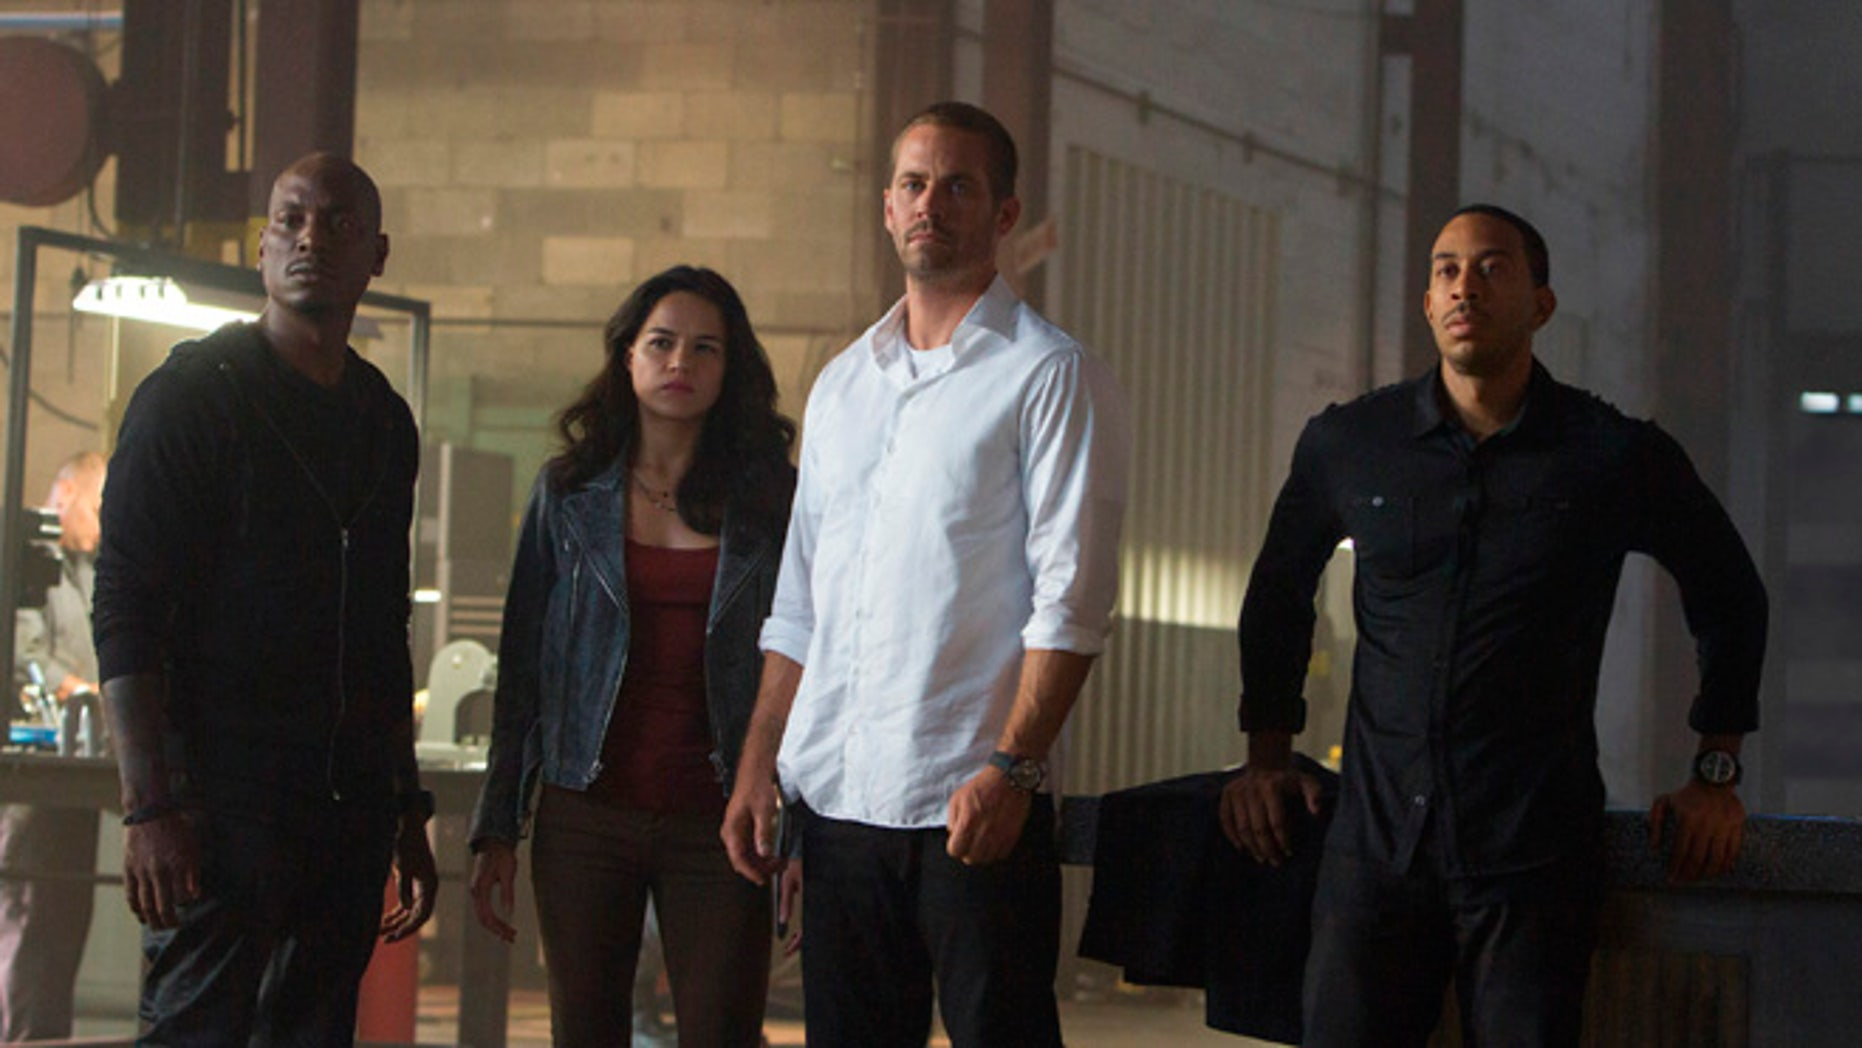 """Tyrese Gibson, Michelle Rodriguez, Paul Walker and Chris """"Ludacris"""" Bridges in the film, """"Furious 7,"""" directed by James Wan."""